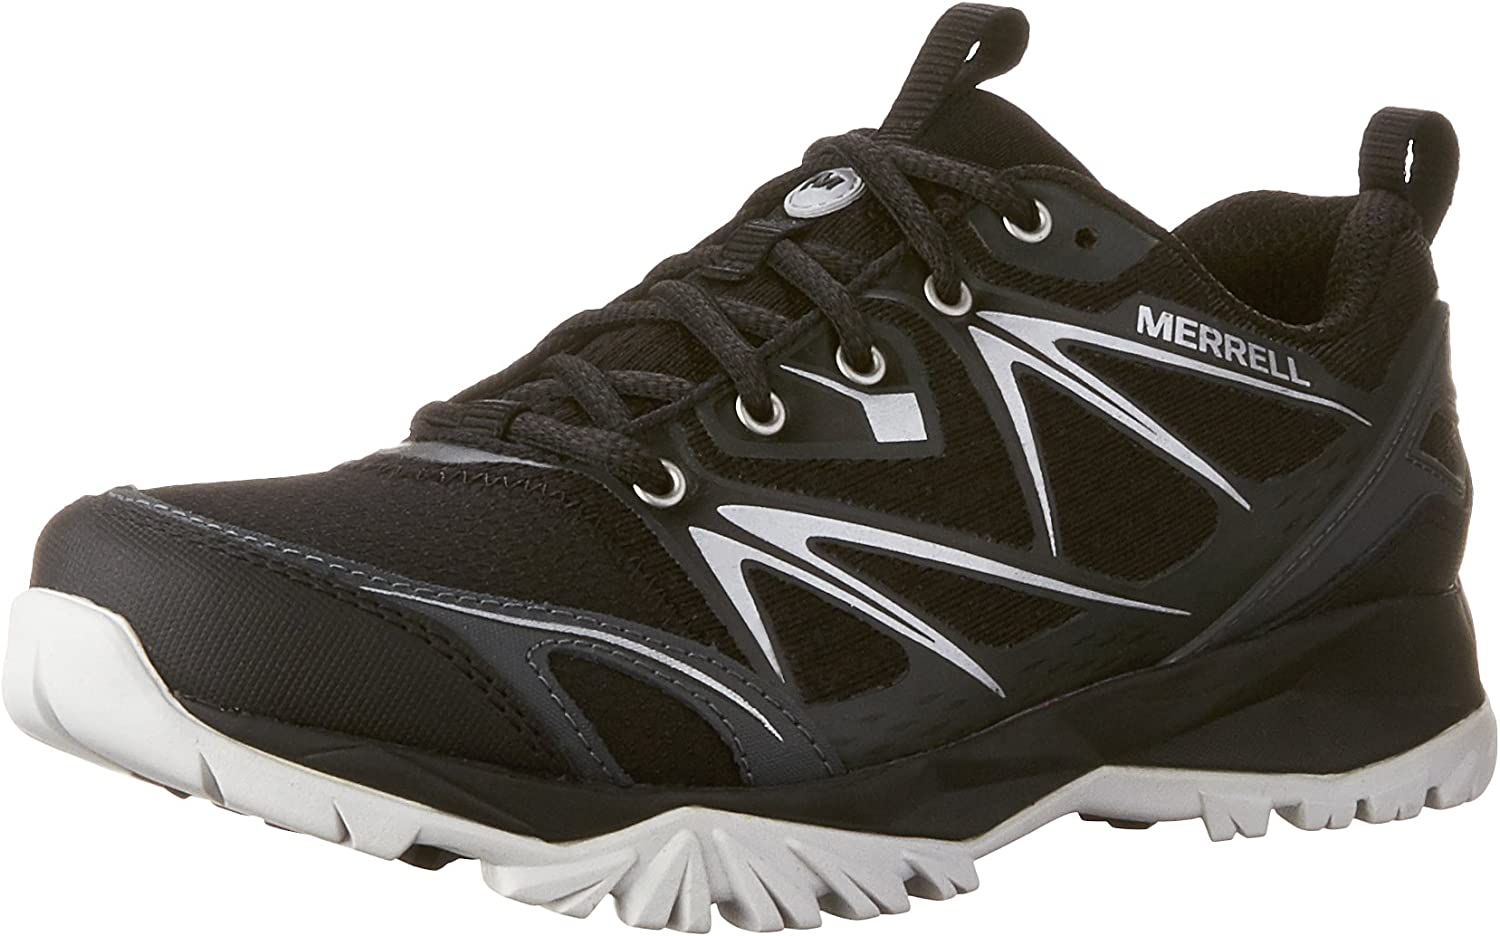 Merrell Womens Capra Bolt Hiking shoes